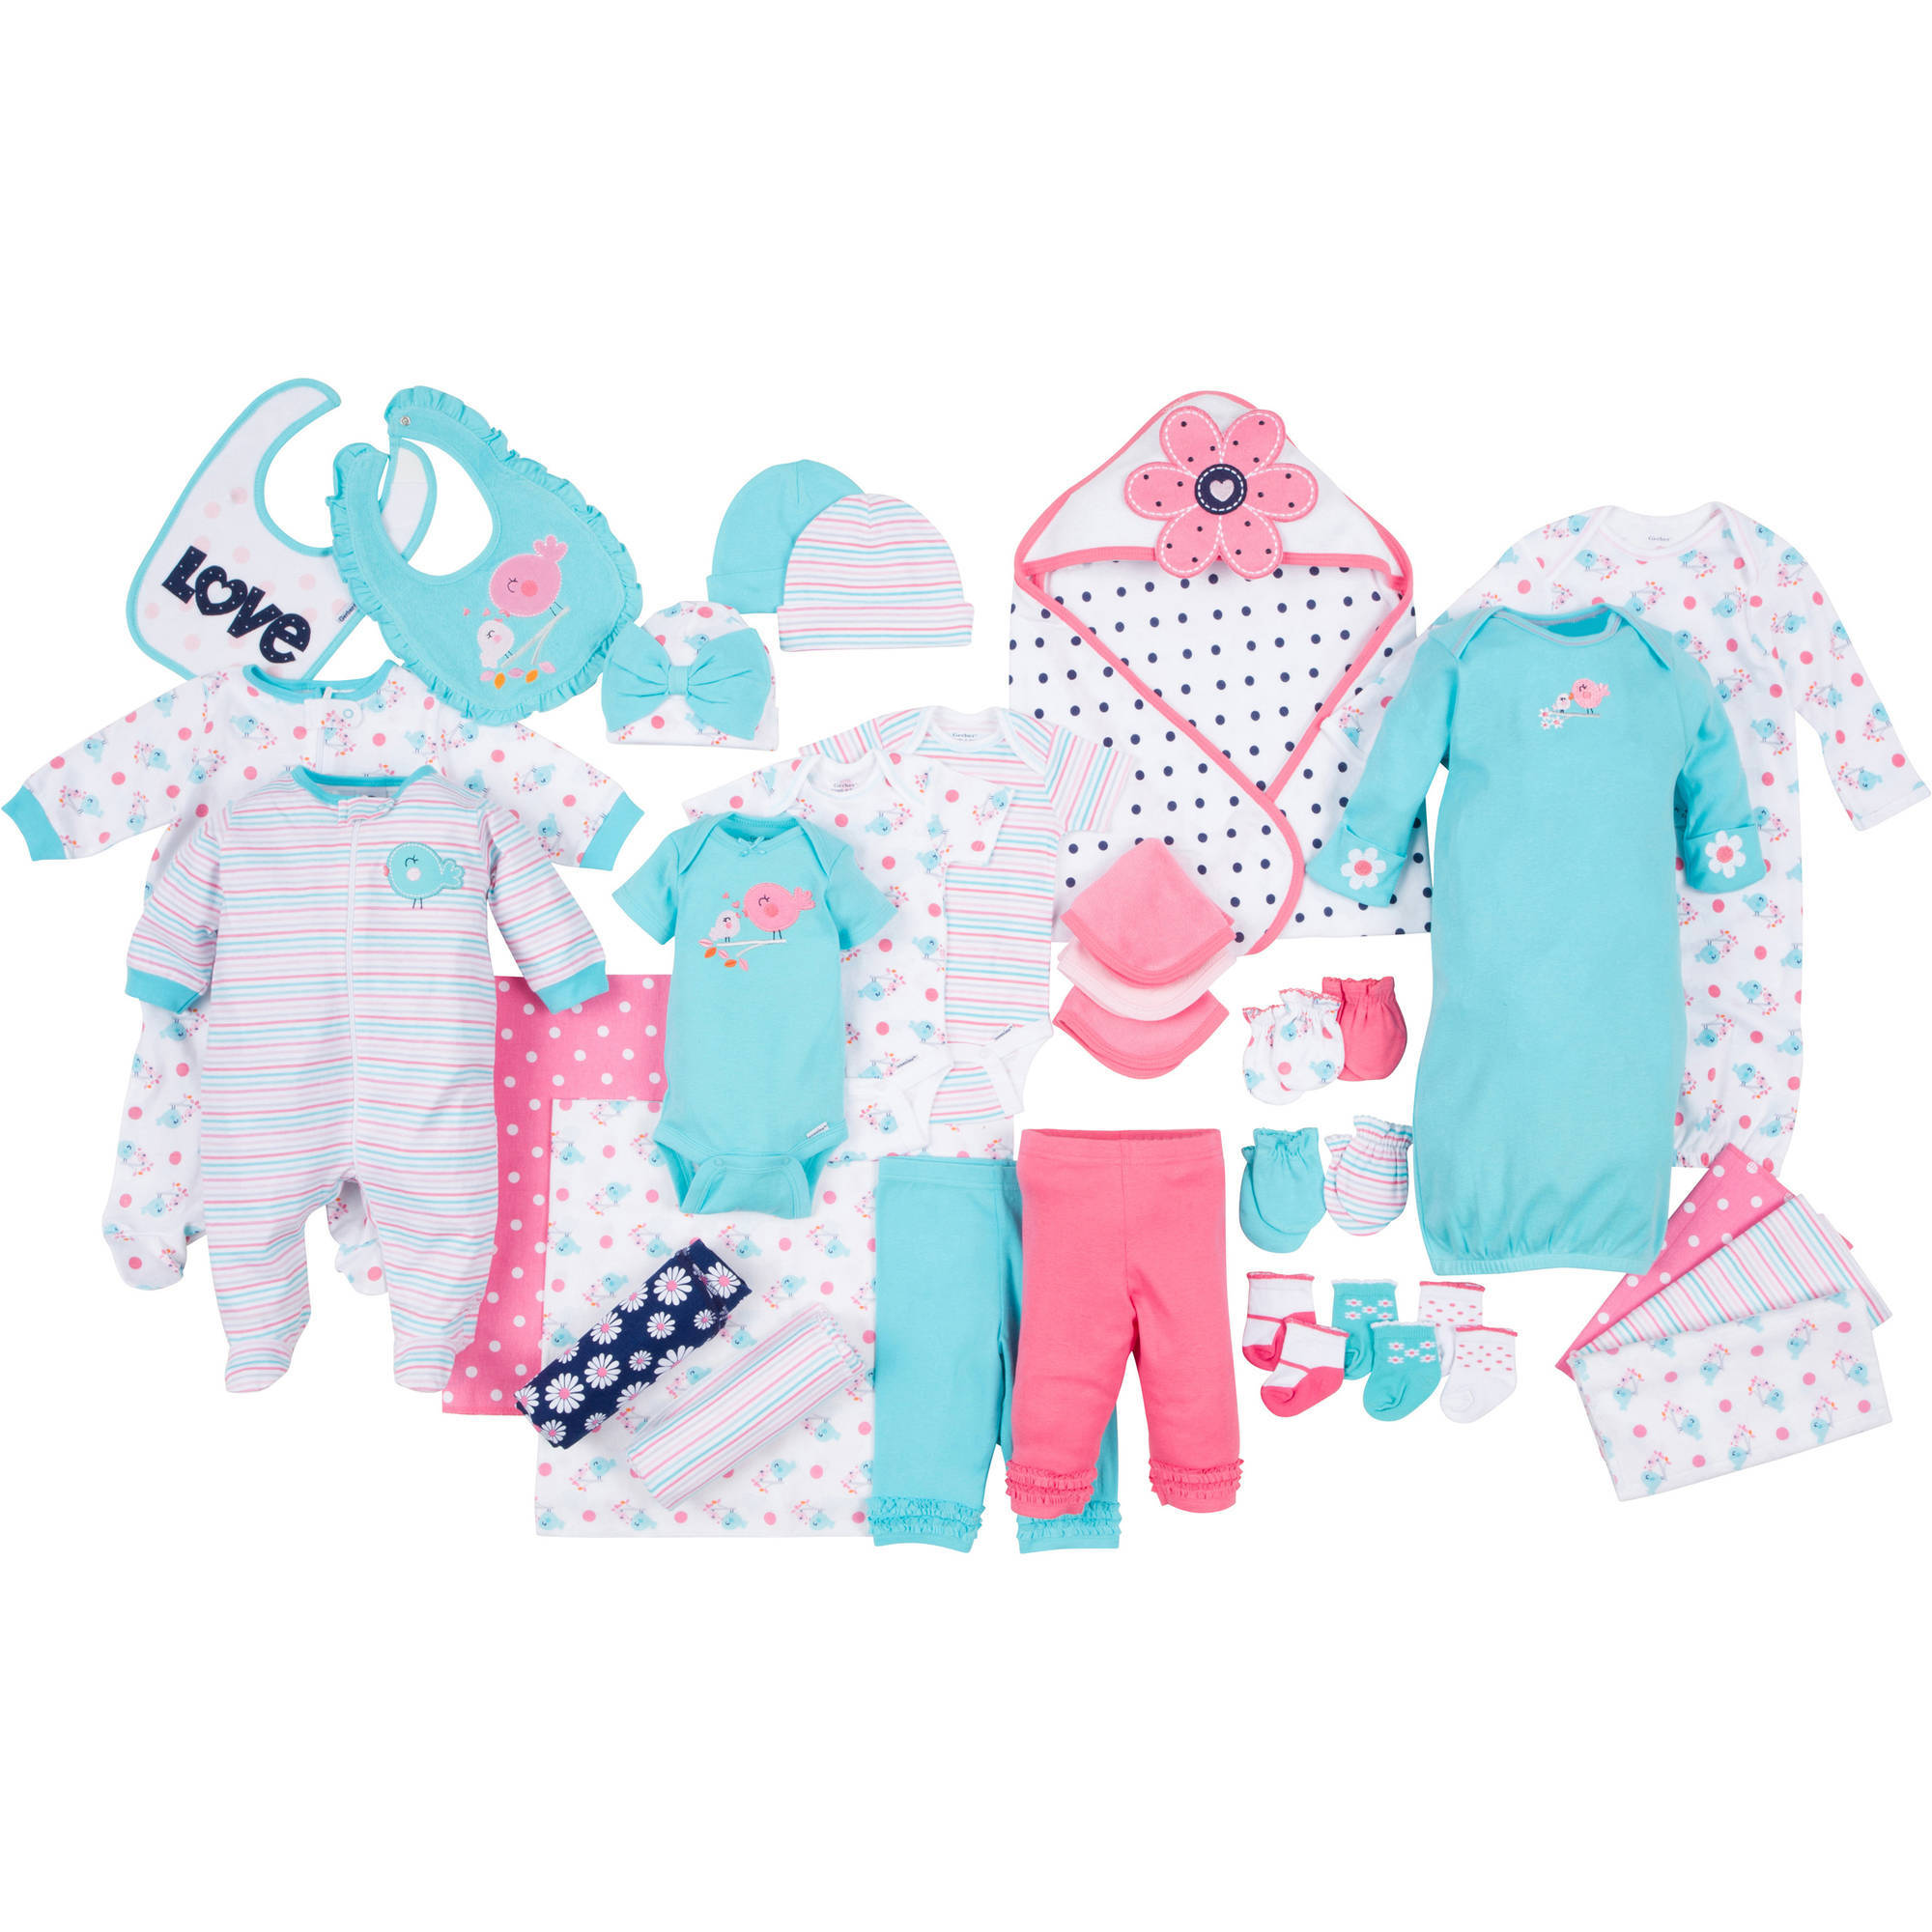 Gerber Newborn Baby Girl Perfect Baby Shower Gift 33 Pc Layette Set, Ages 0-3M